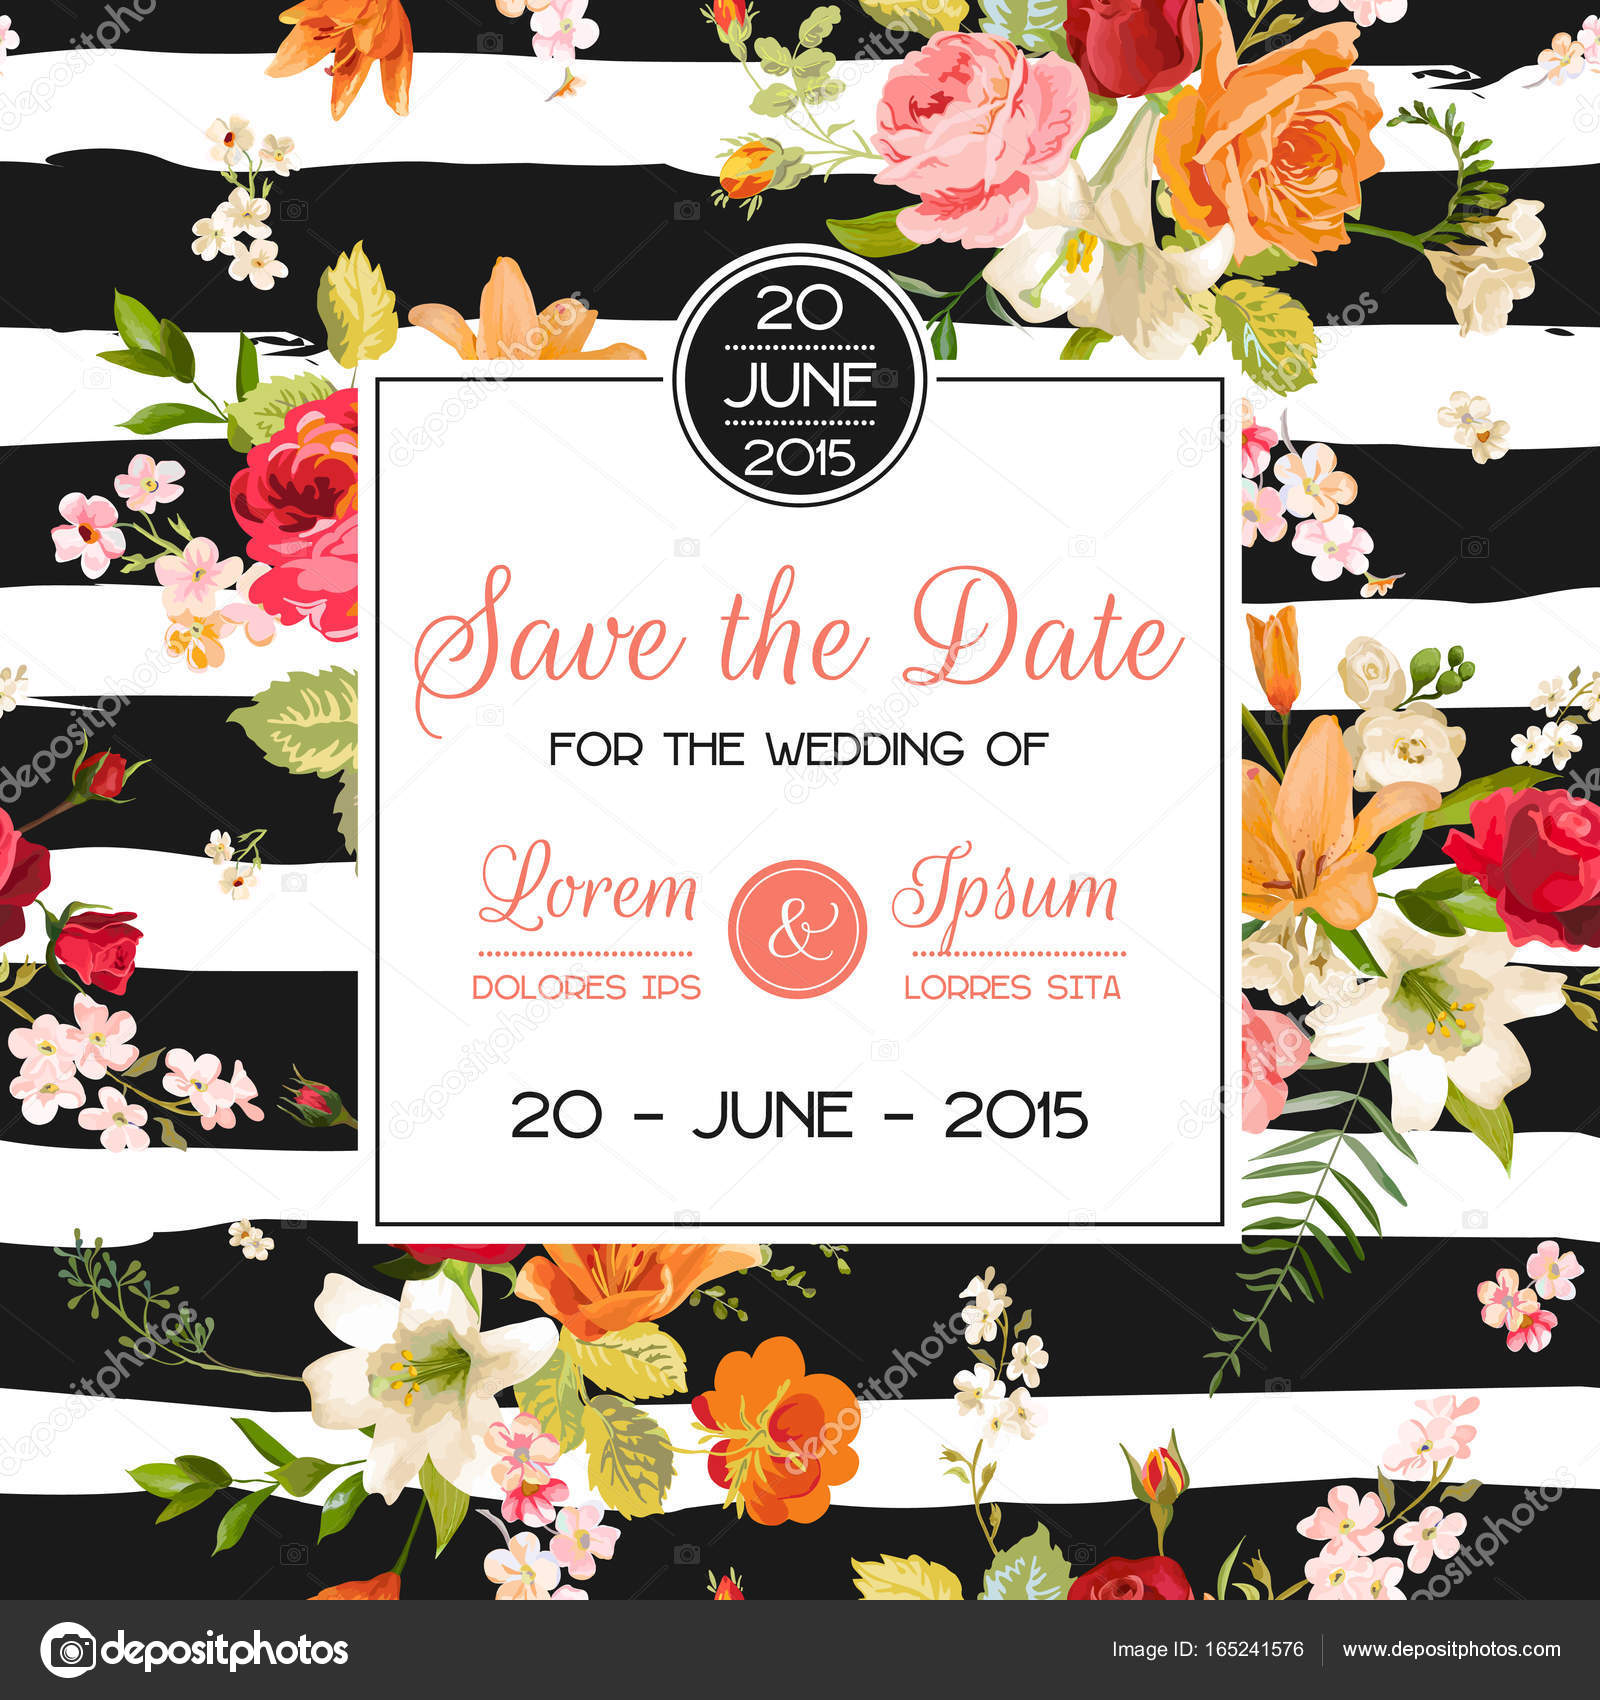 Wedding invitation template floral greeting card with lily and wedding invitation template floral greeting card with lily and orchid flowers decoration for marriage m4hsunfo